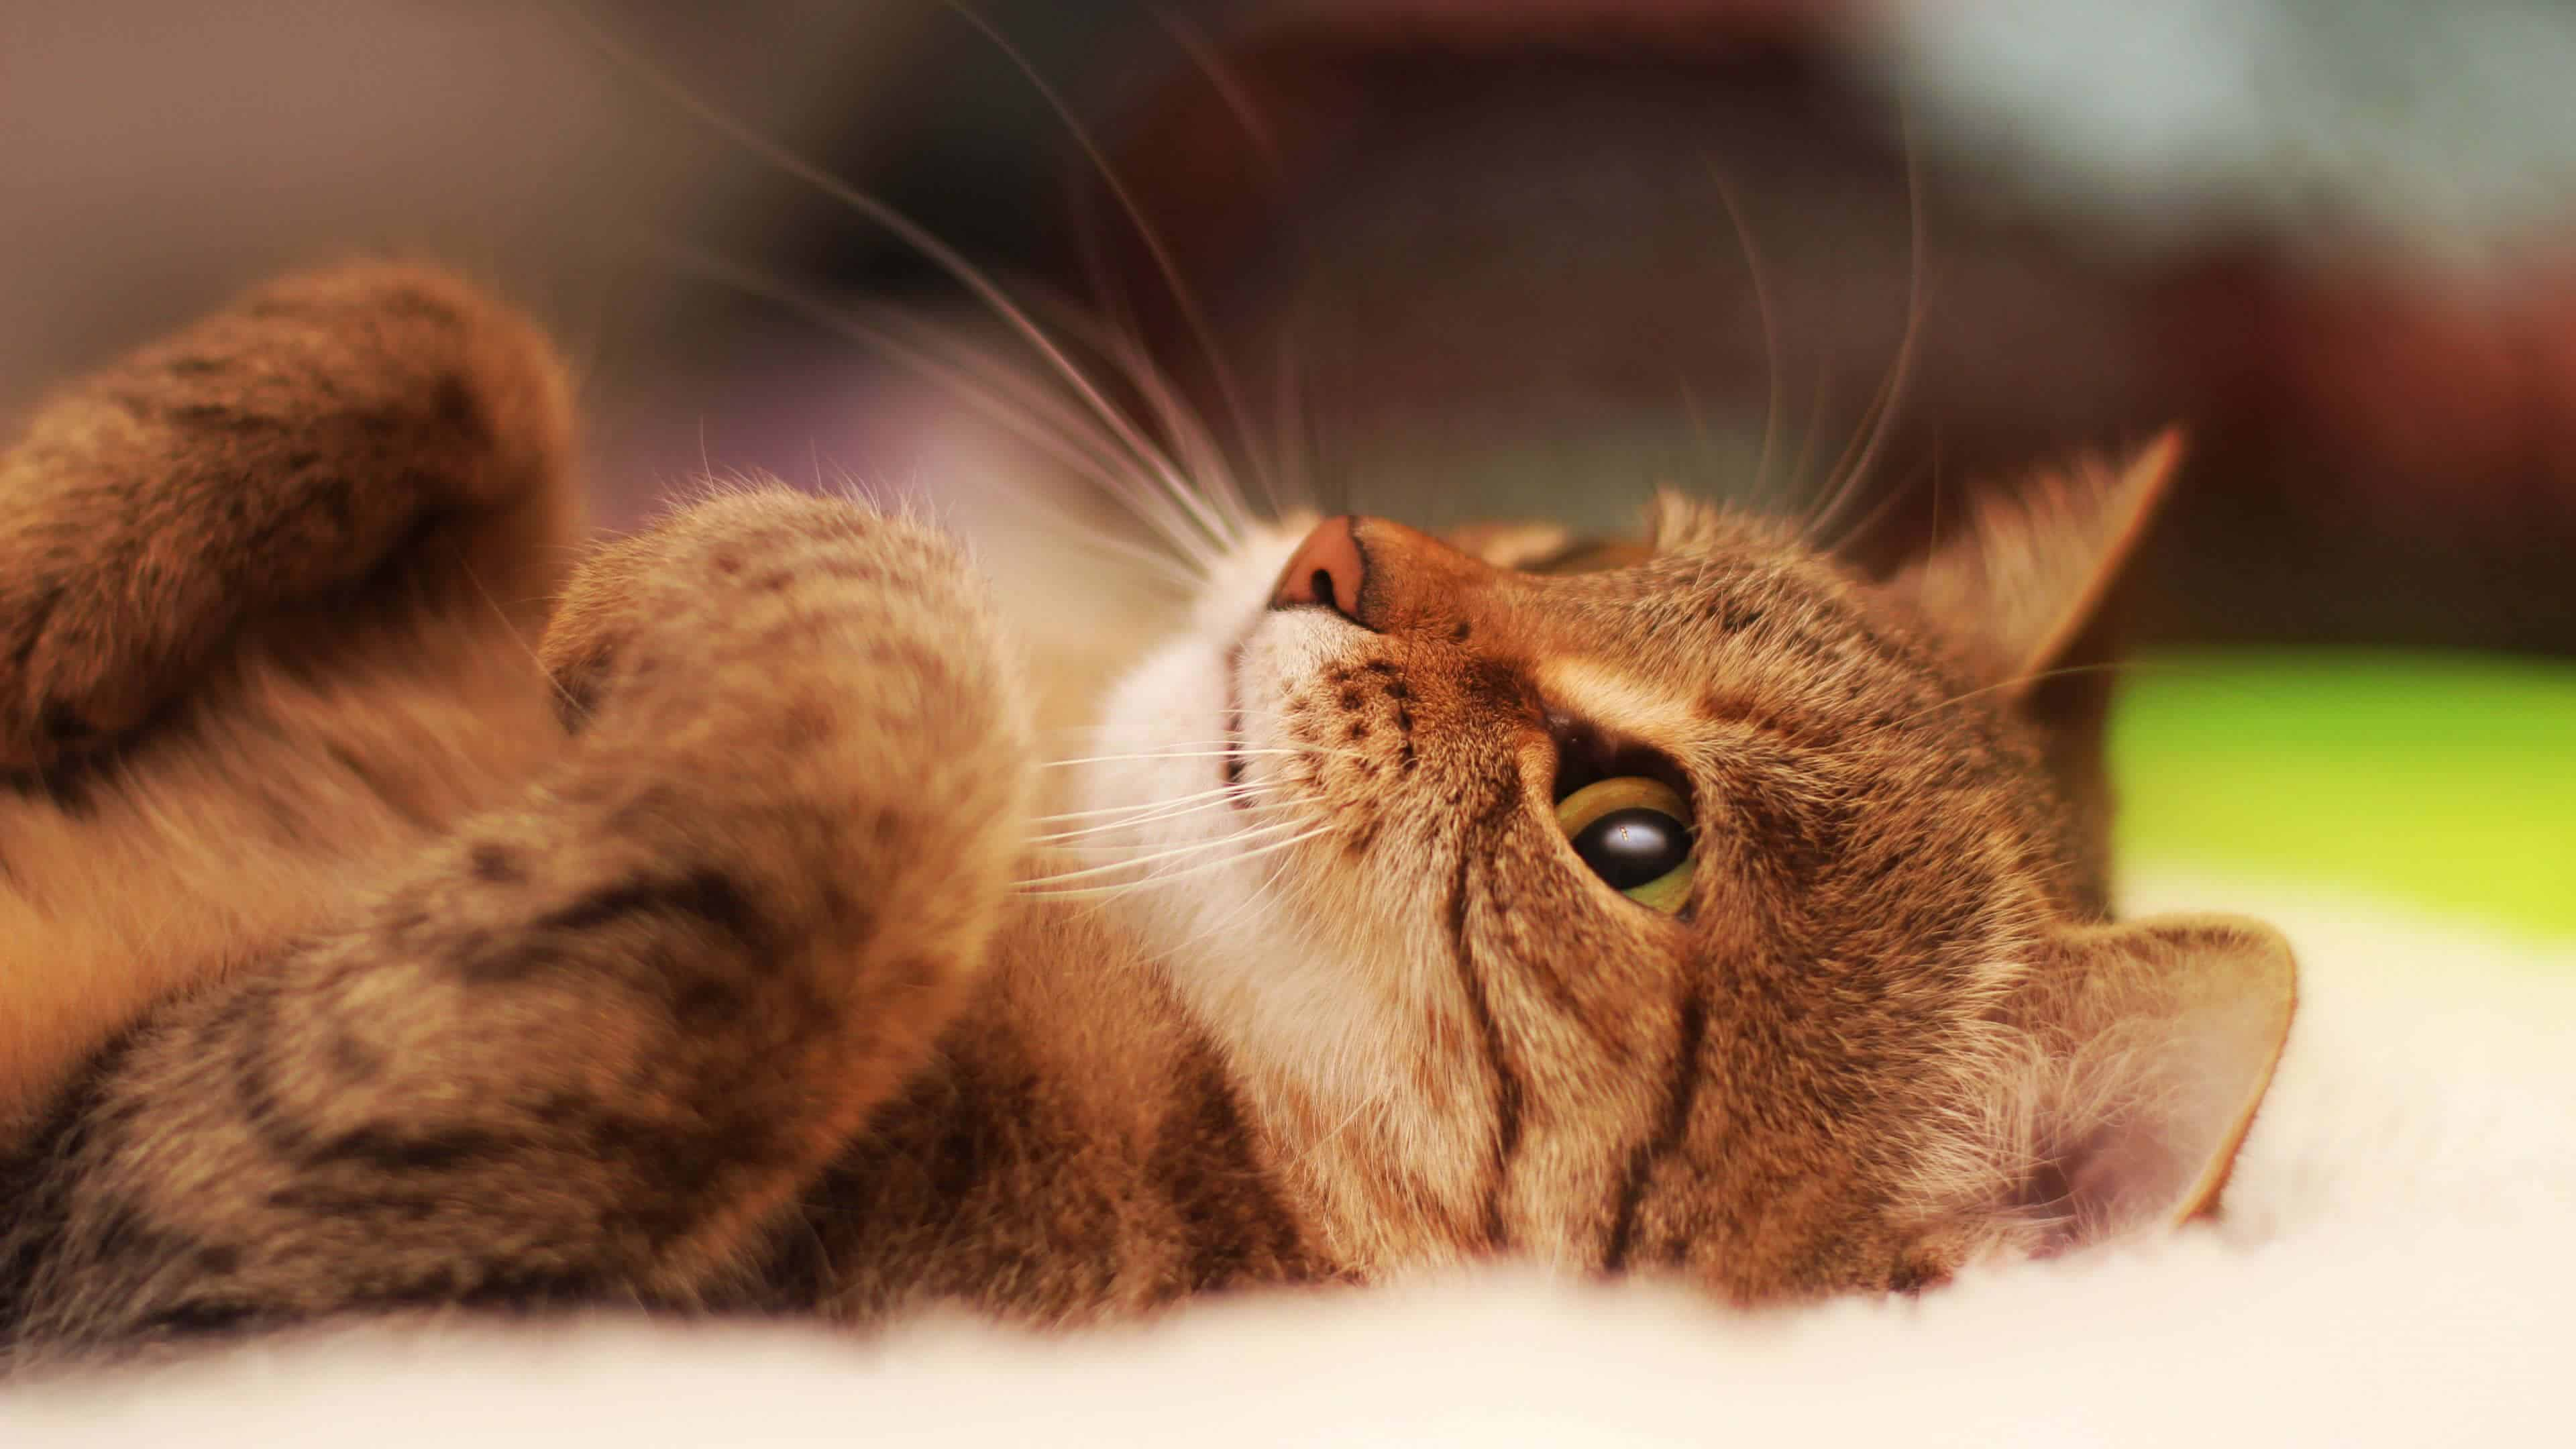 cat lying on its back uhd 4k wallpaper